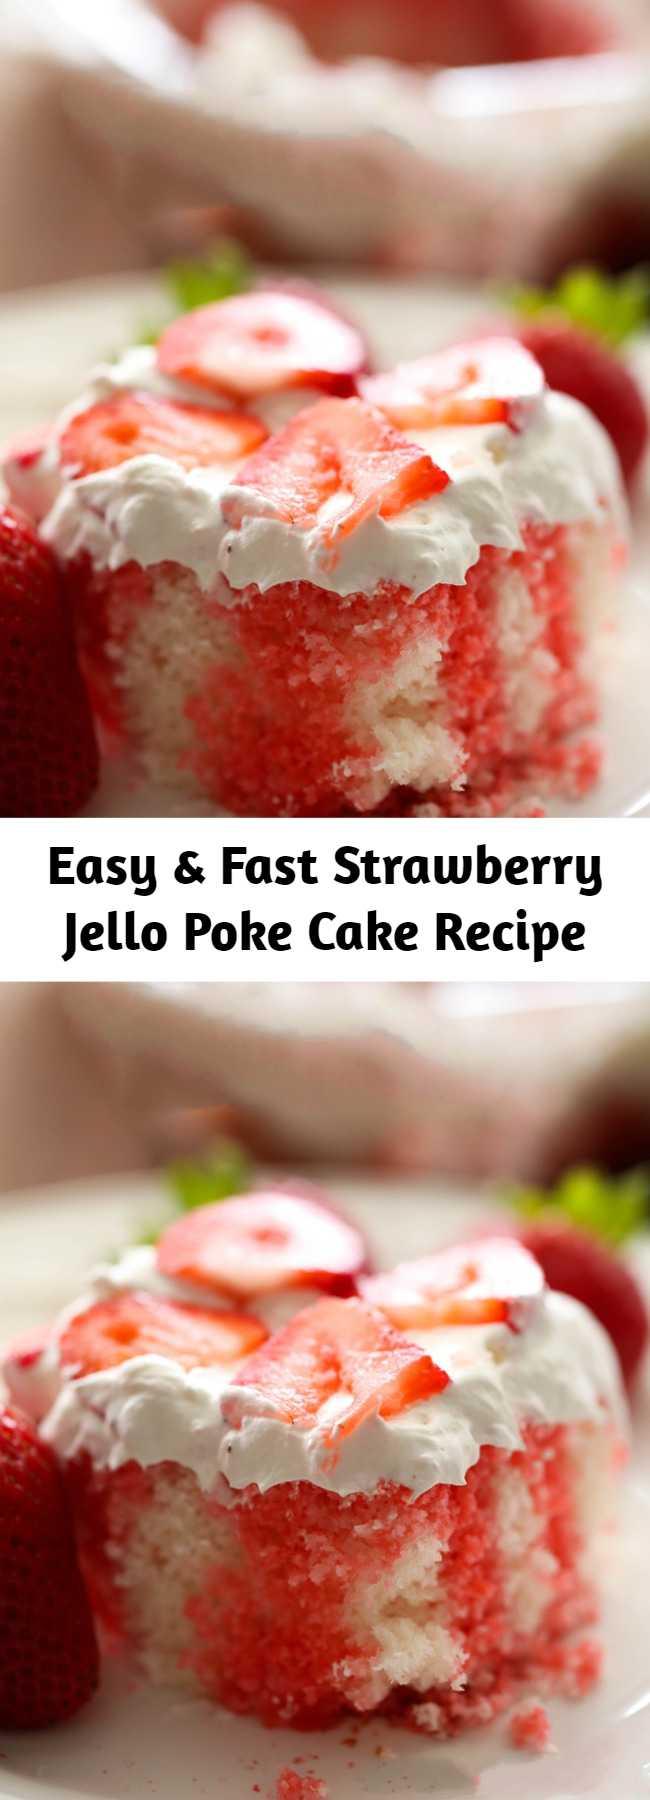 Strawberry Jello Poke Cake Recipe - This recipe is easy, fast, beautiful and SO yummy!